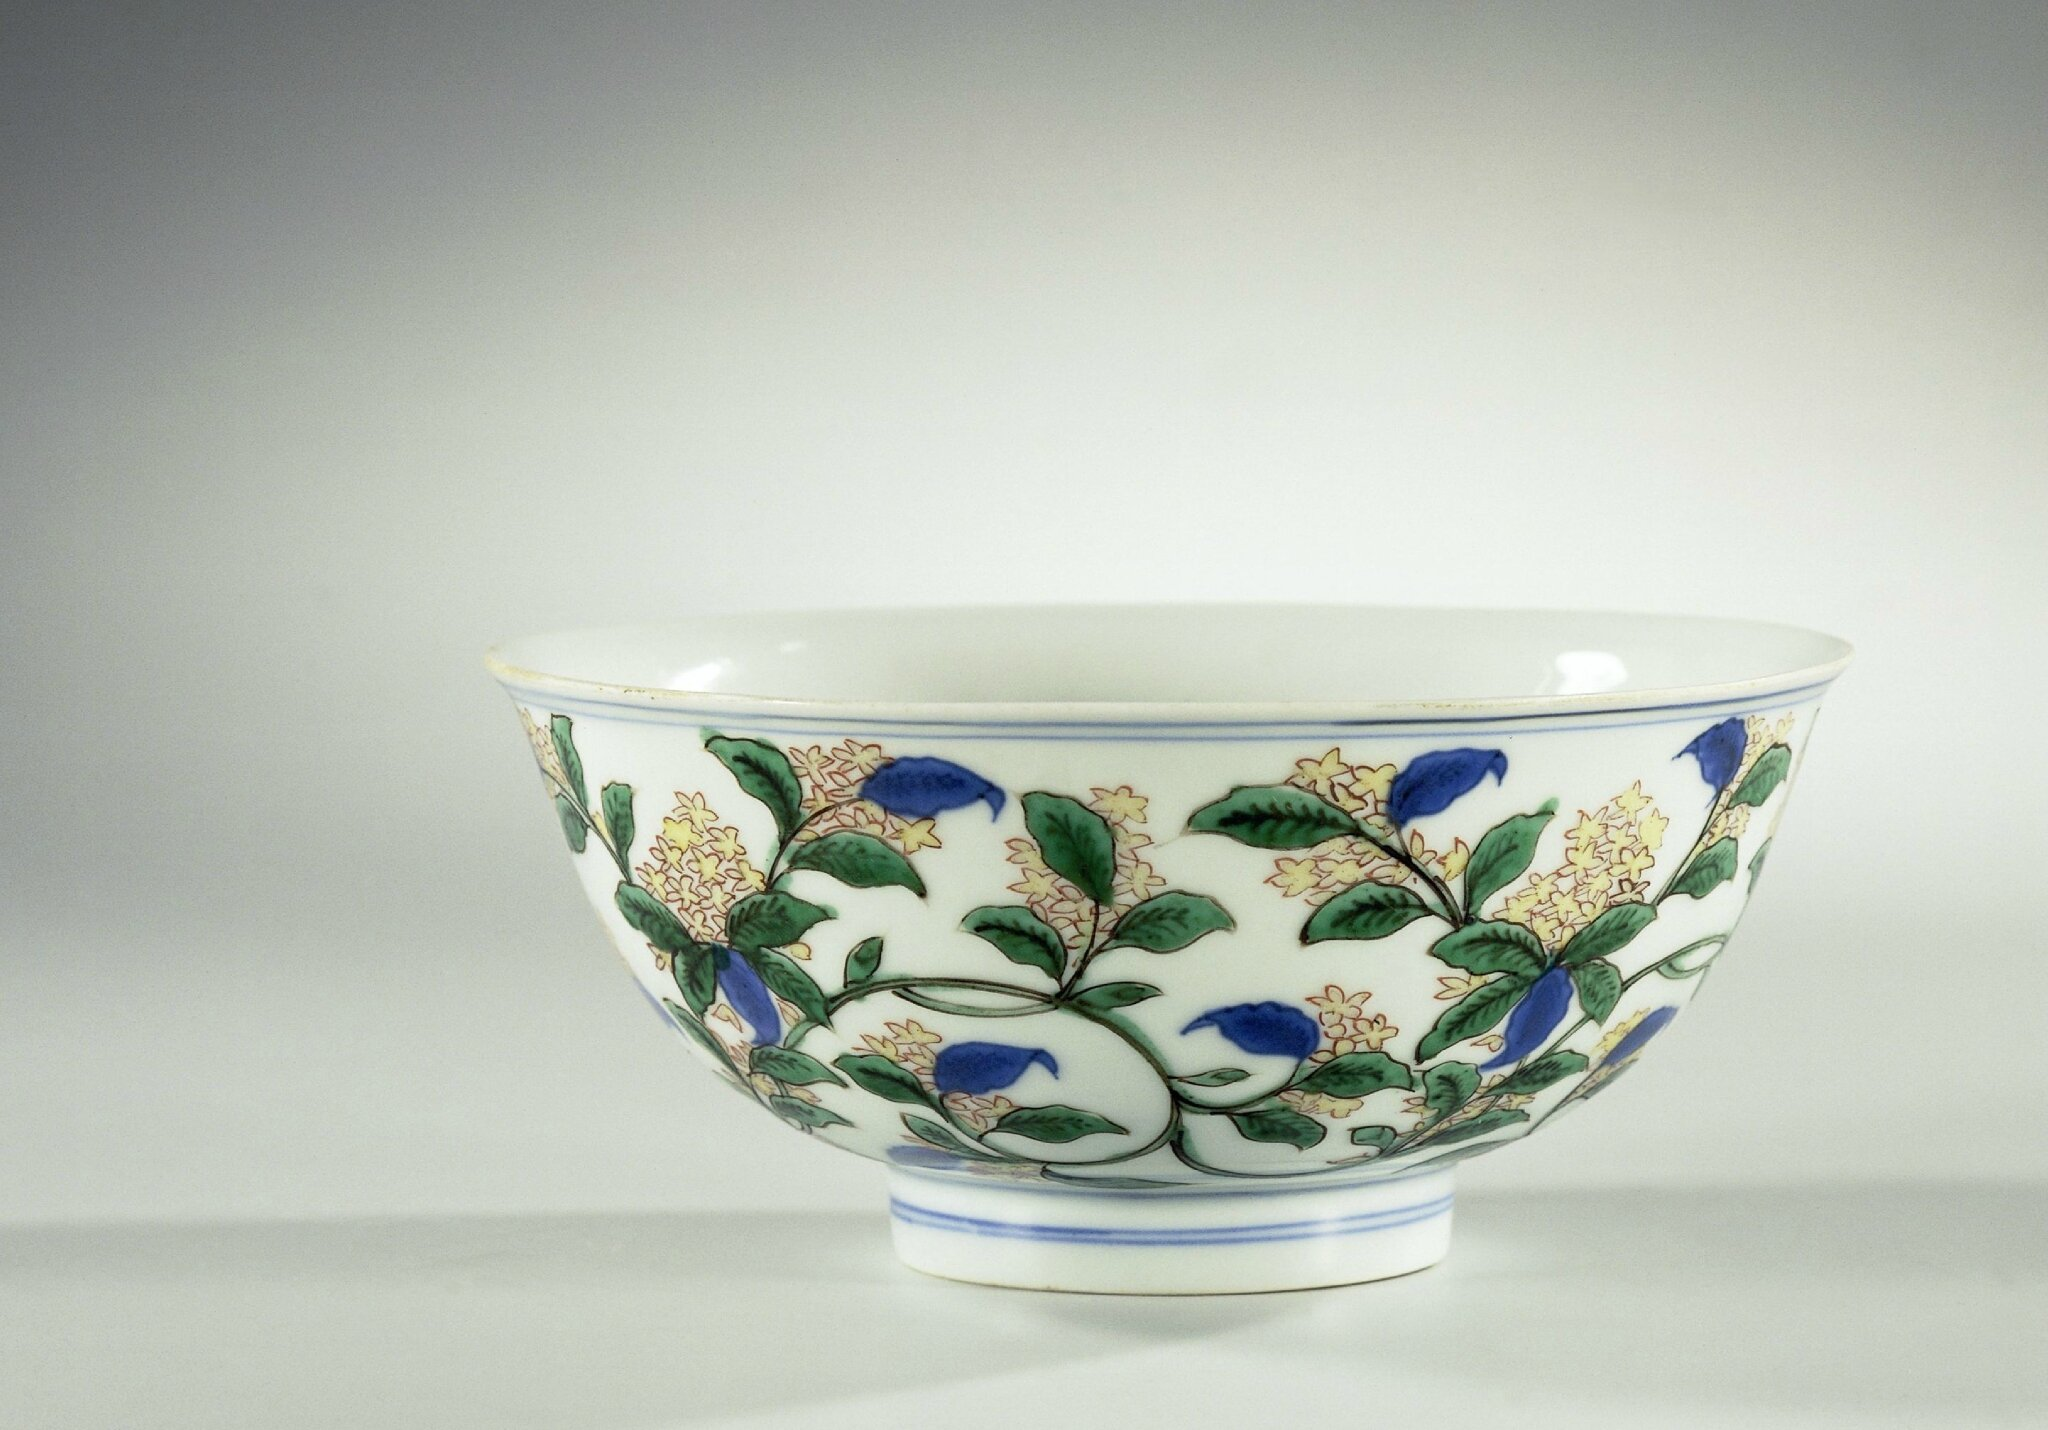 Bowl with flower branches, Wanli mark and period, c